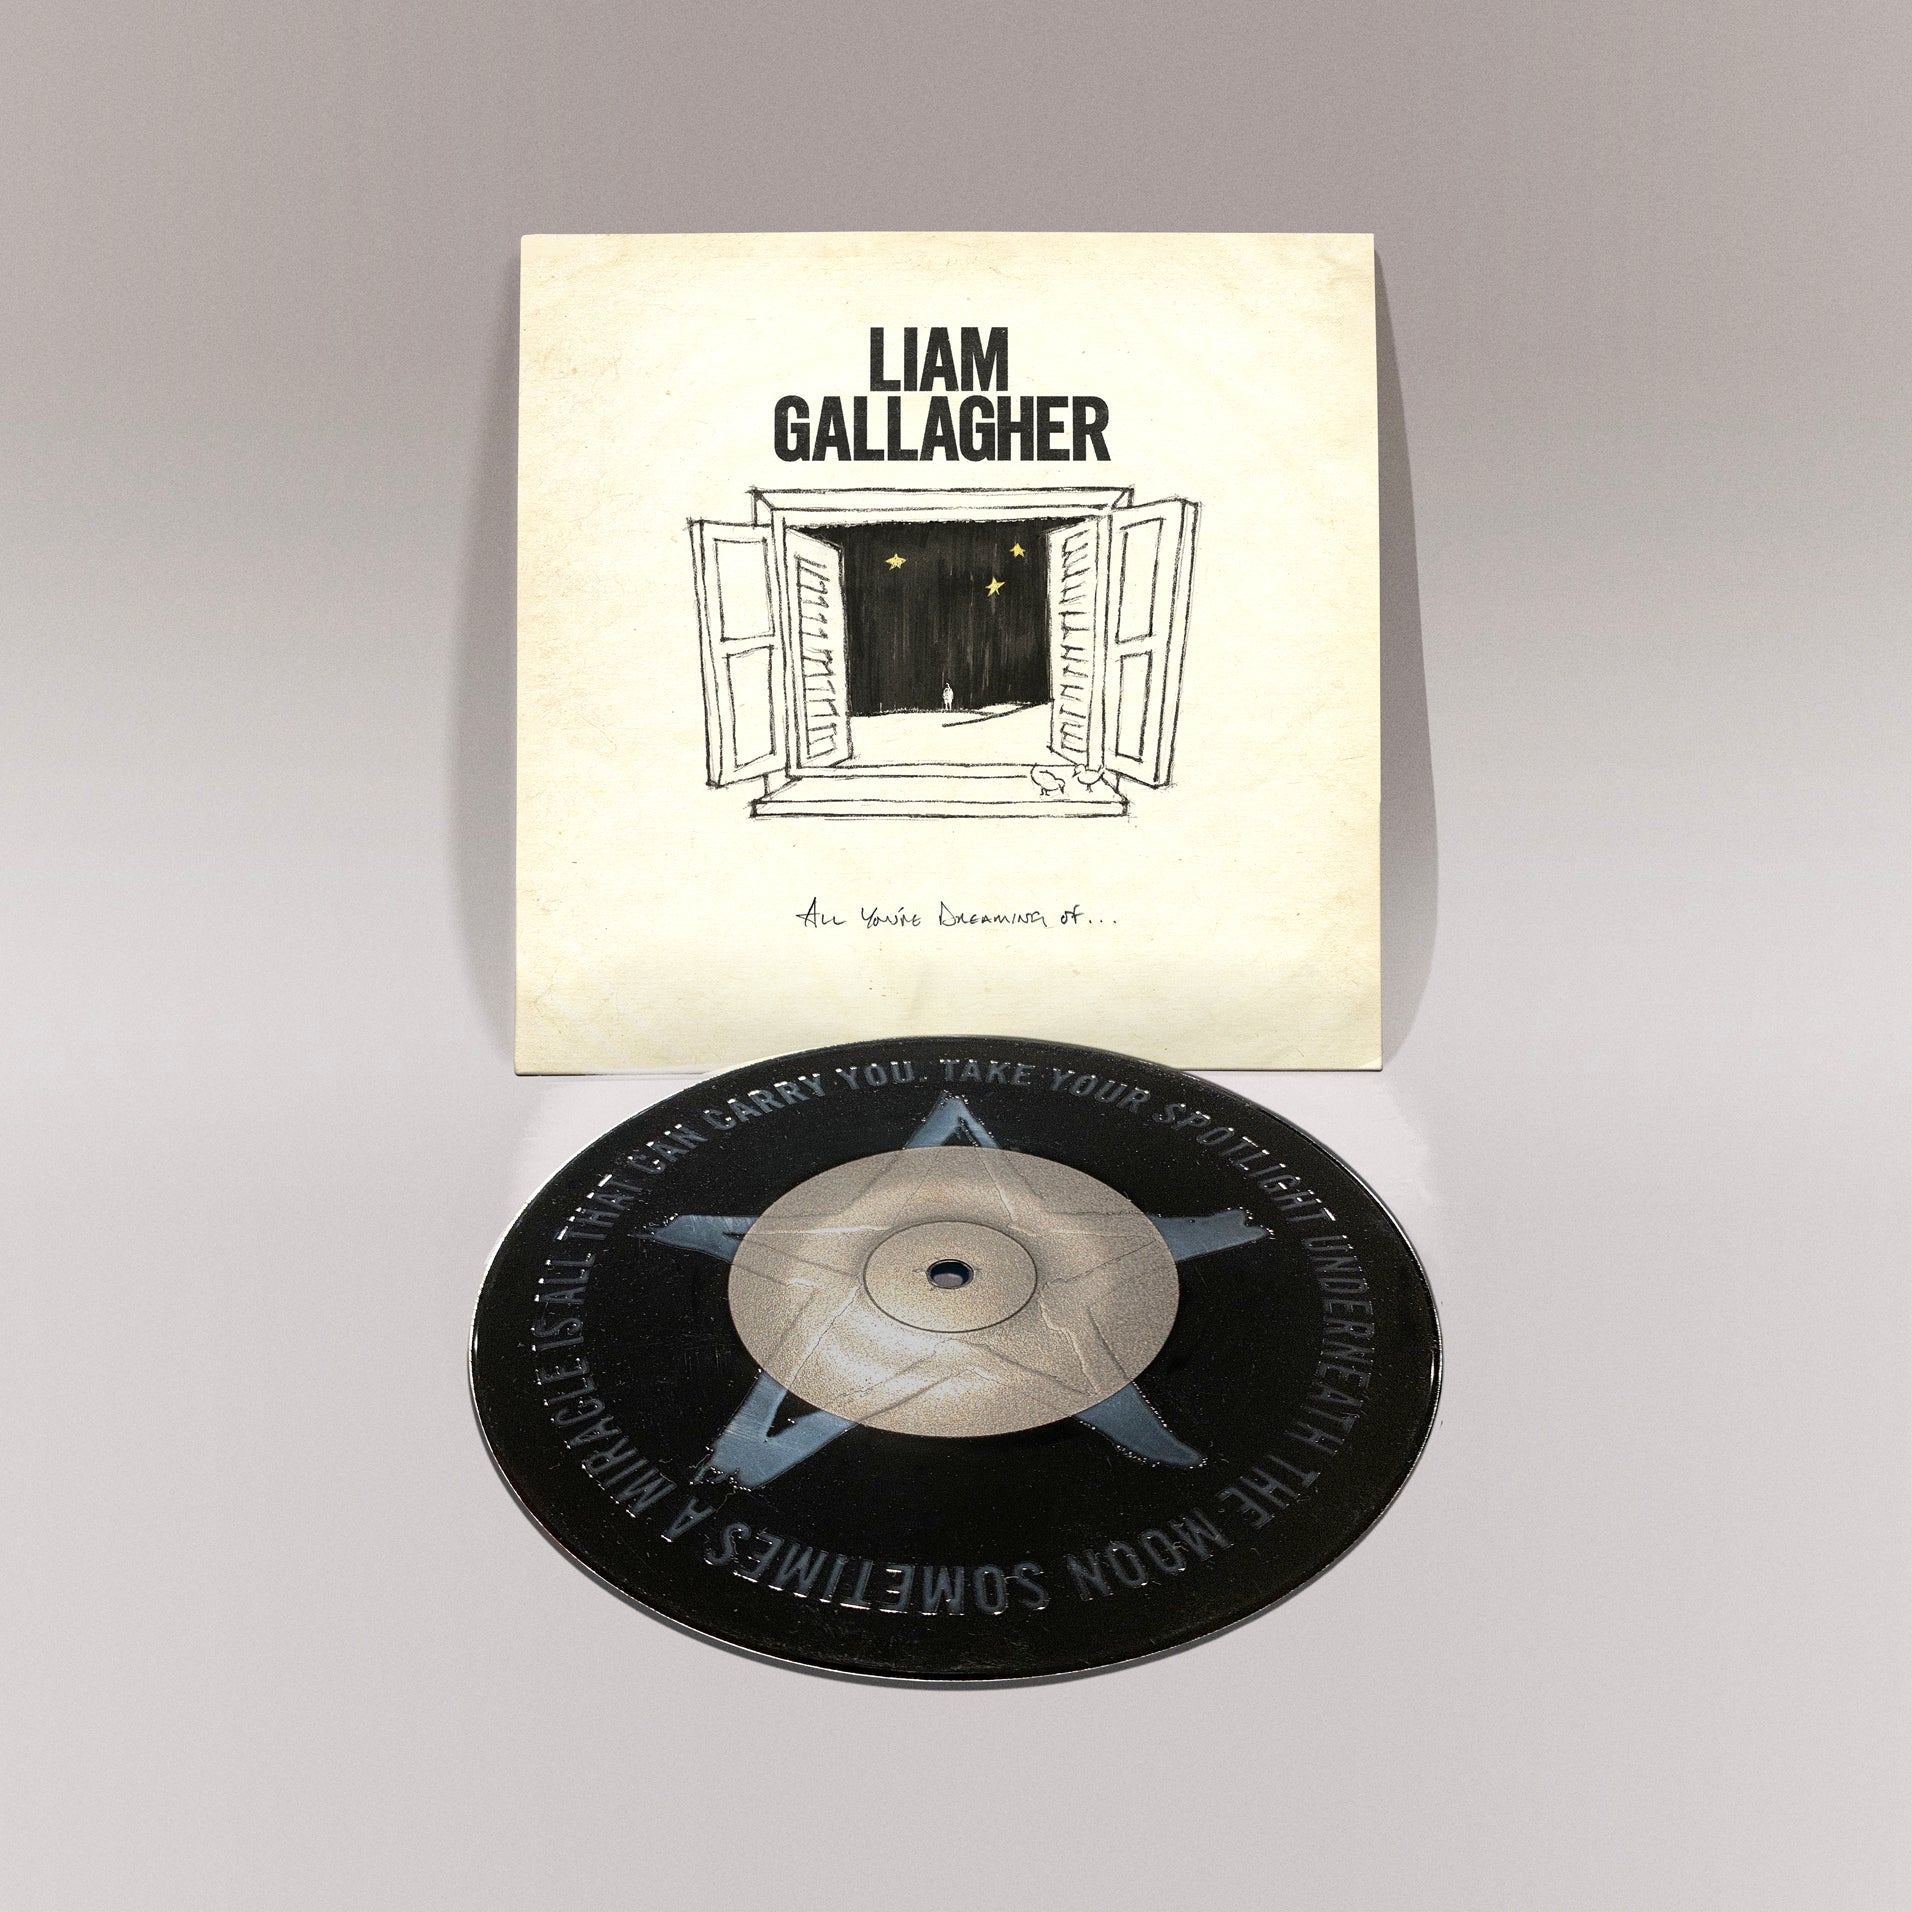 "Liam Gallagher - All You're Dreaming Of Limited Edition 7"" Vinyl Record Etched"